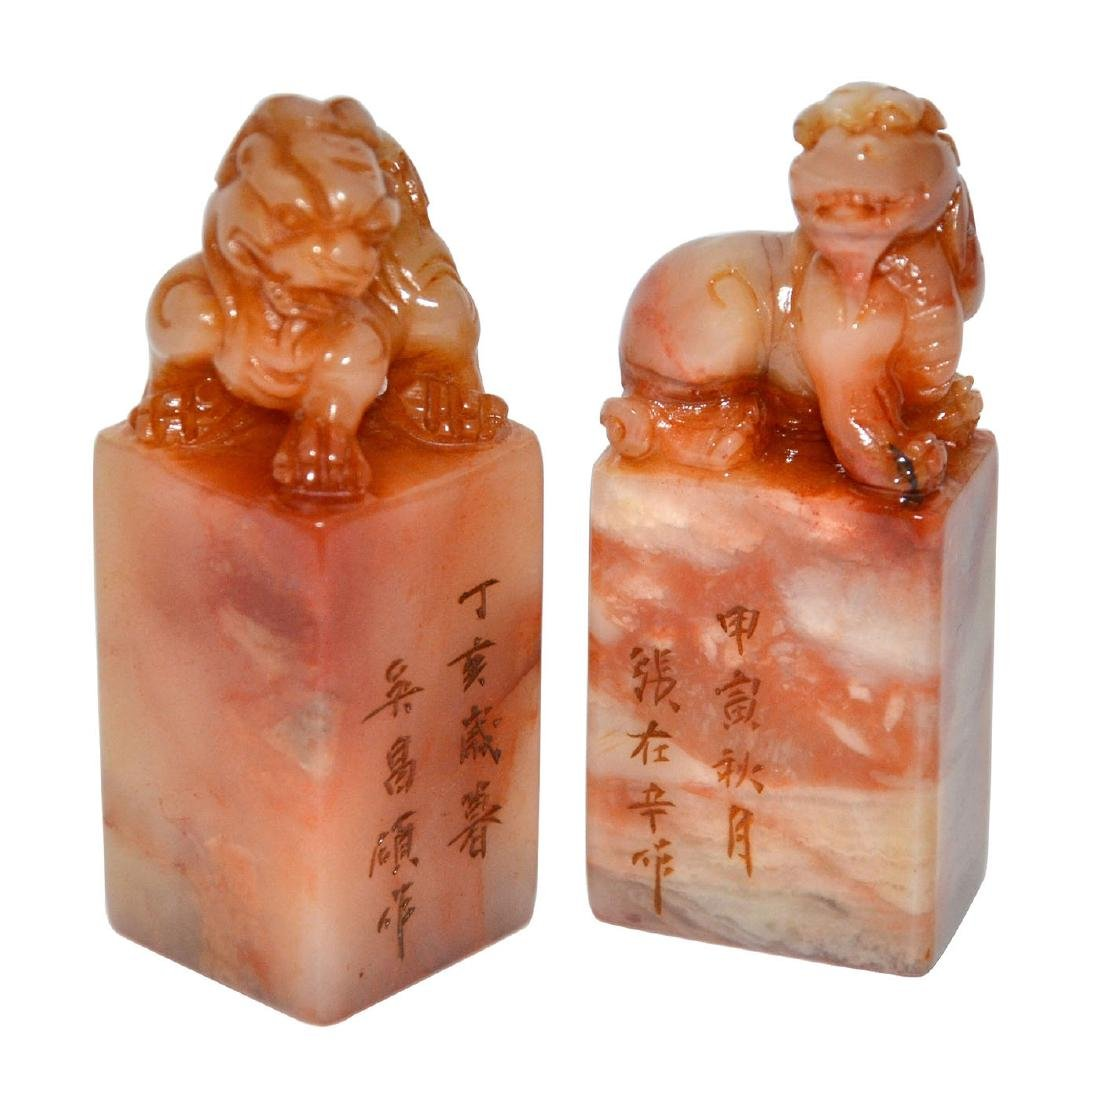 A Pair of Shoushan Stone Seals with Carved Bixie Knop